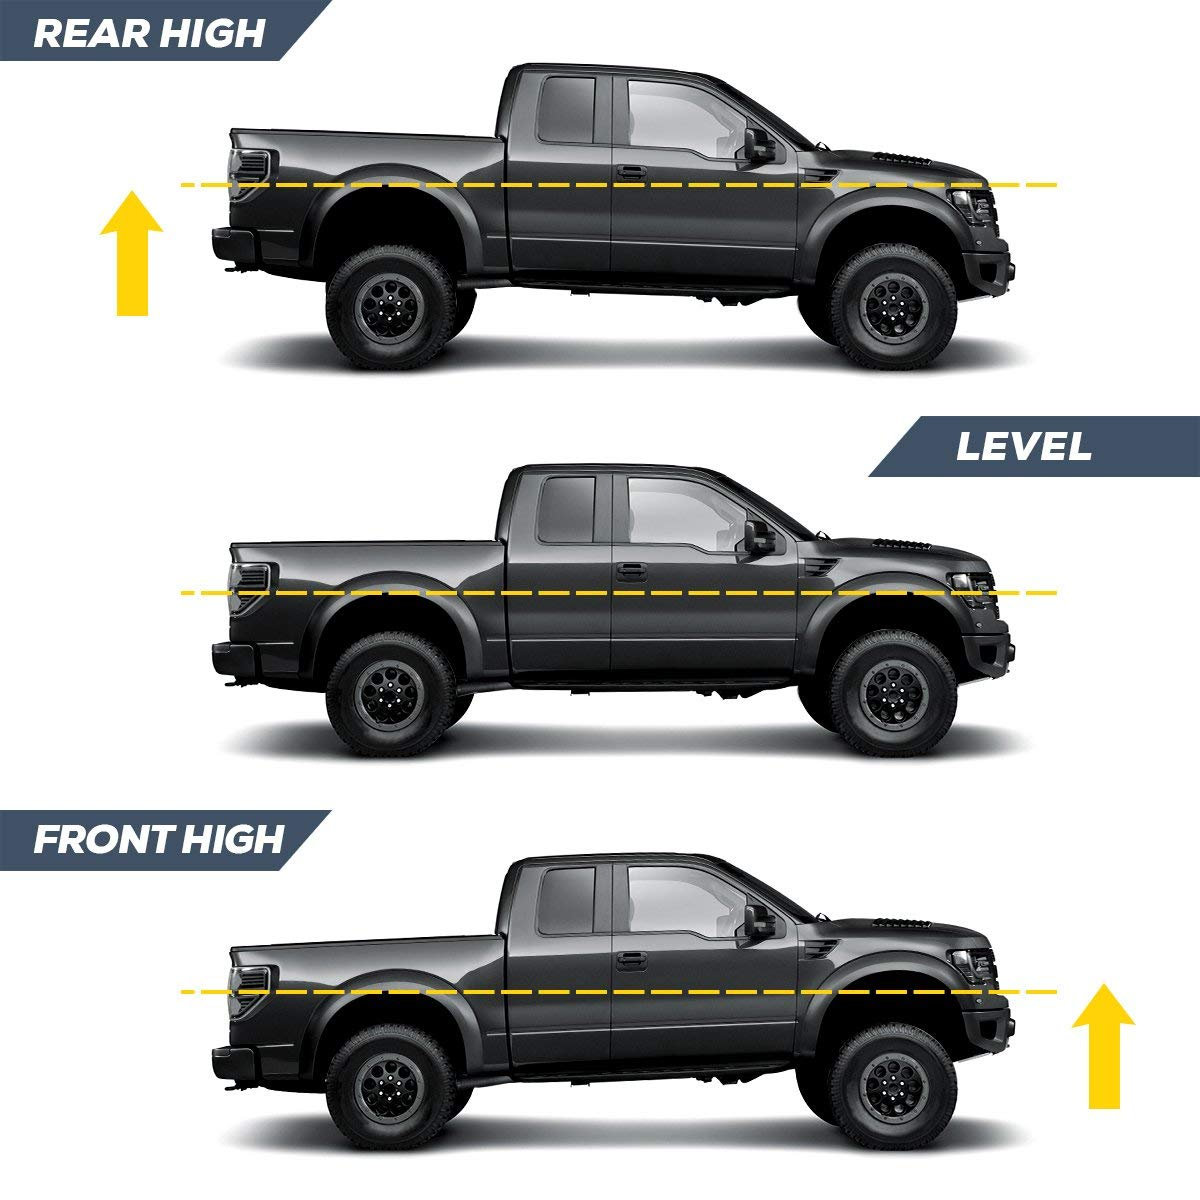 Best Lift Kit For Chevy 2500hd >> The 5 Best Chevy Silverado Lift Kits Big Mother Trucker